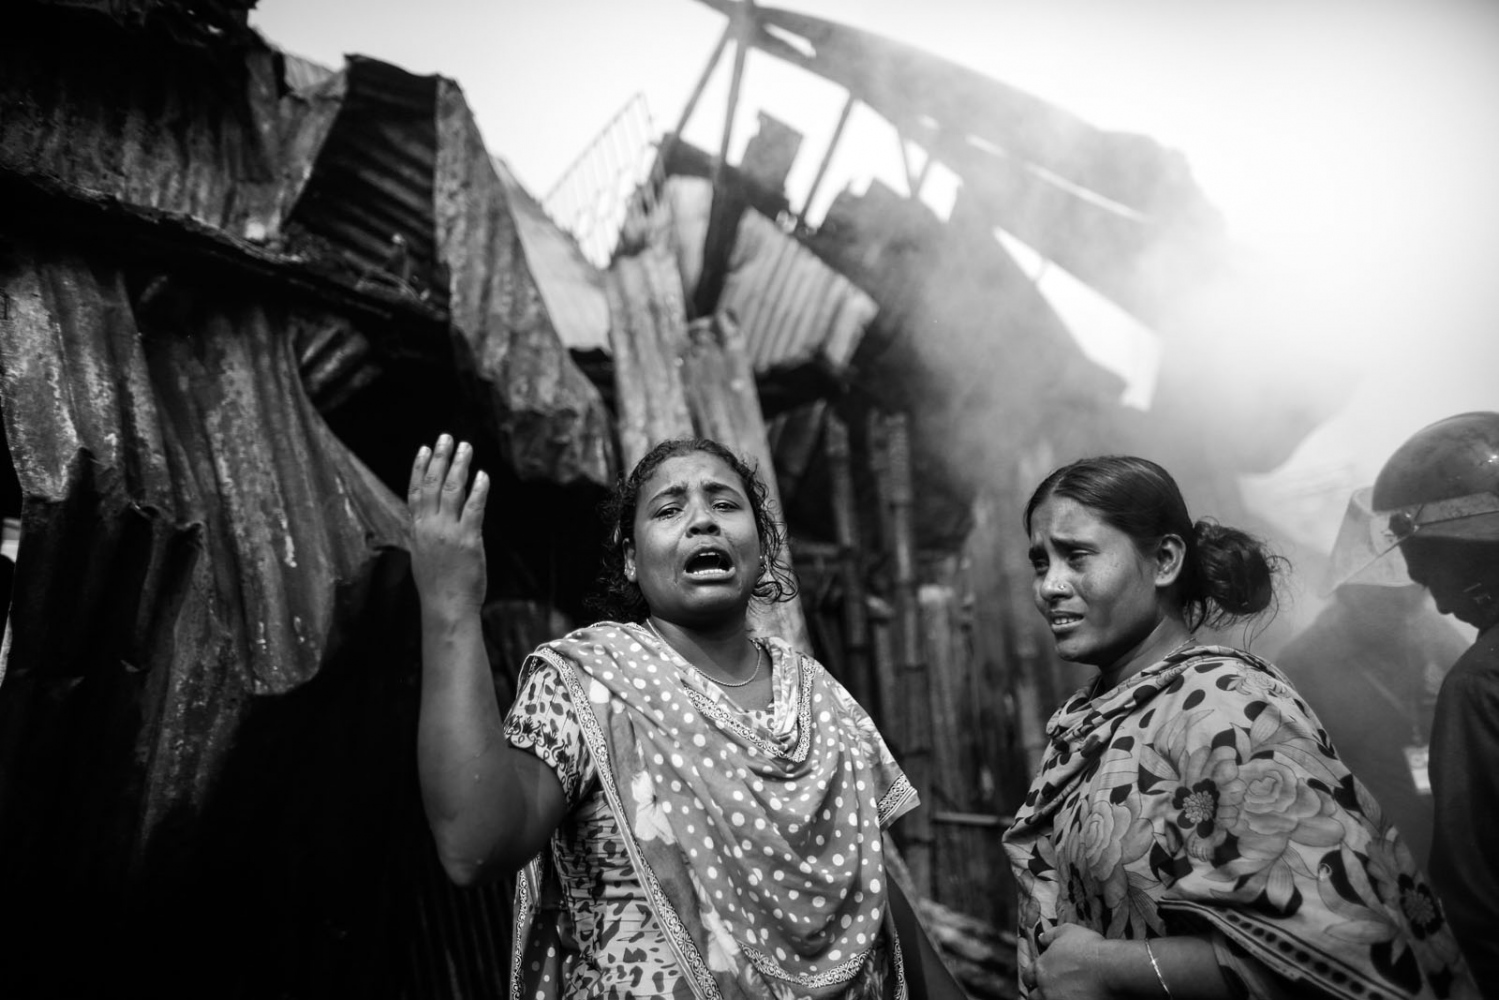 Garment workers cry after she lost all of her belongings in a fire at a slum at Modhubagh in Dhaka. A child was burnt alive and hundreds of shanties were gutted during the fire that originated from a cooking oven at a slum in the Modhubagh area of Dhaka.